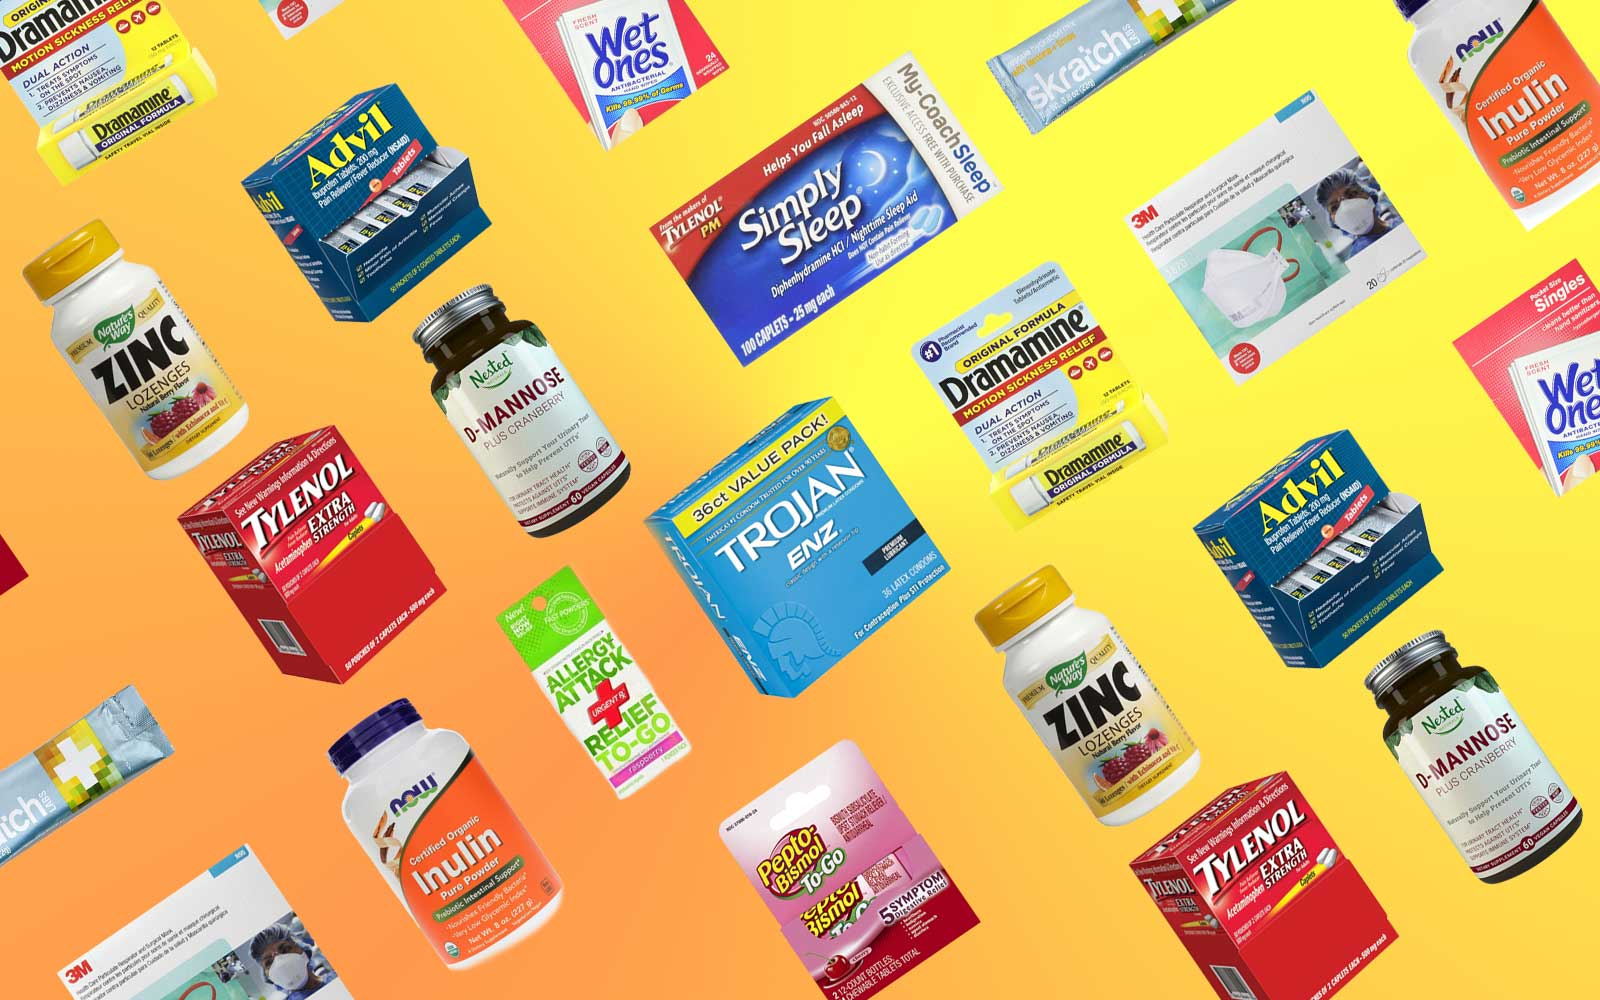 Medicine to Pack in Your Carry-on